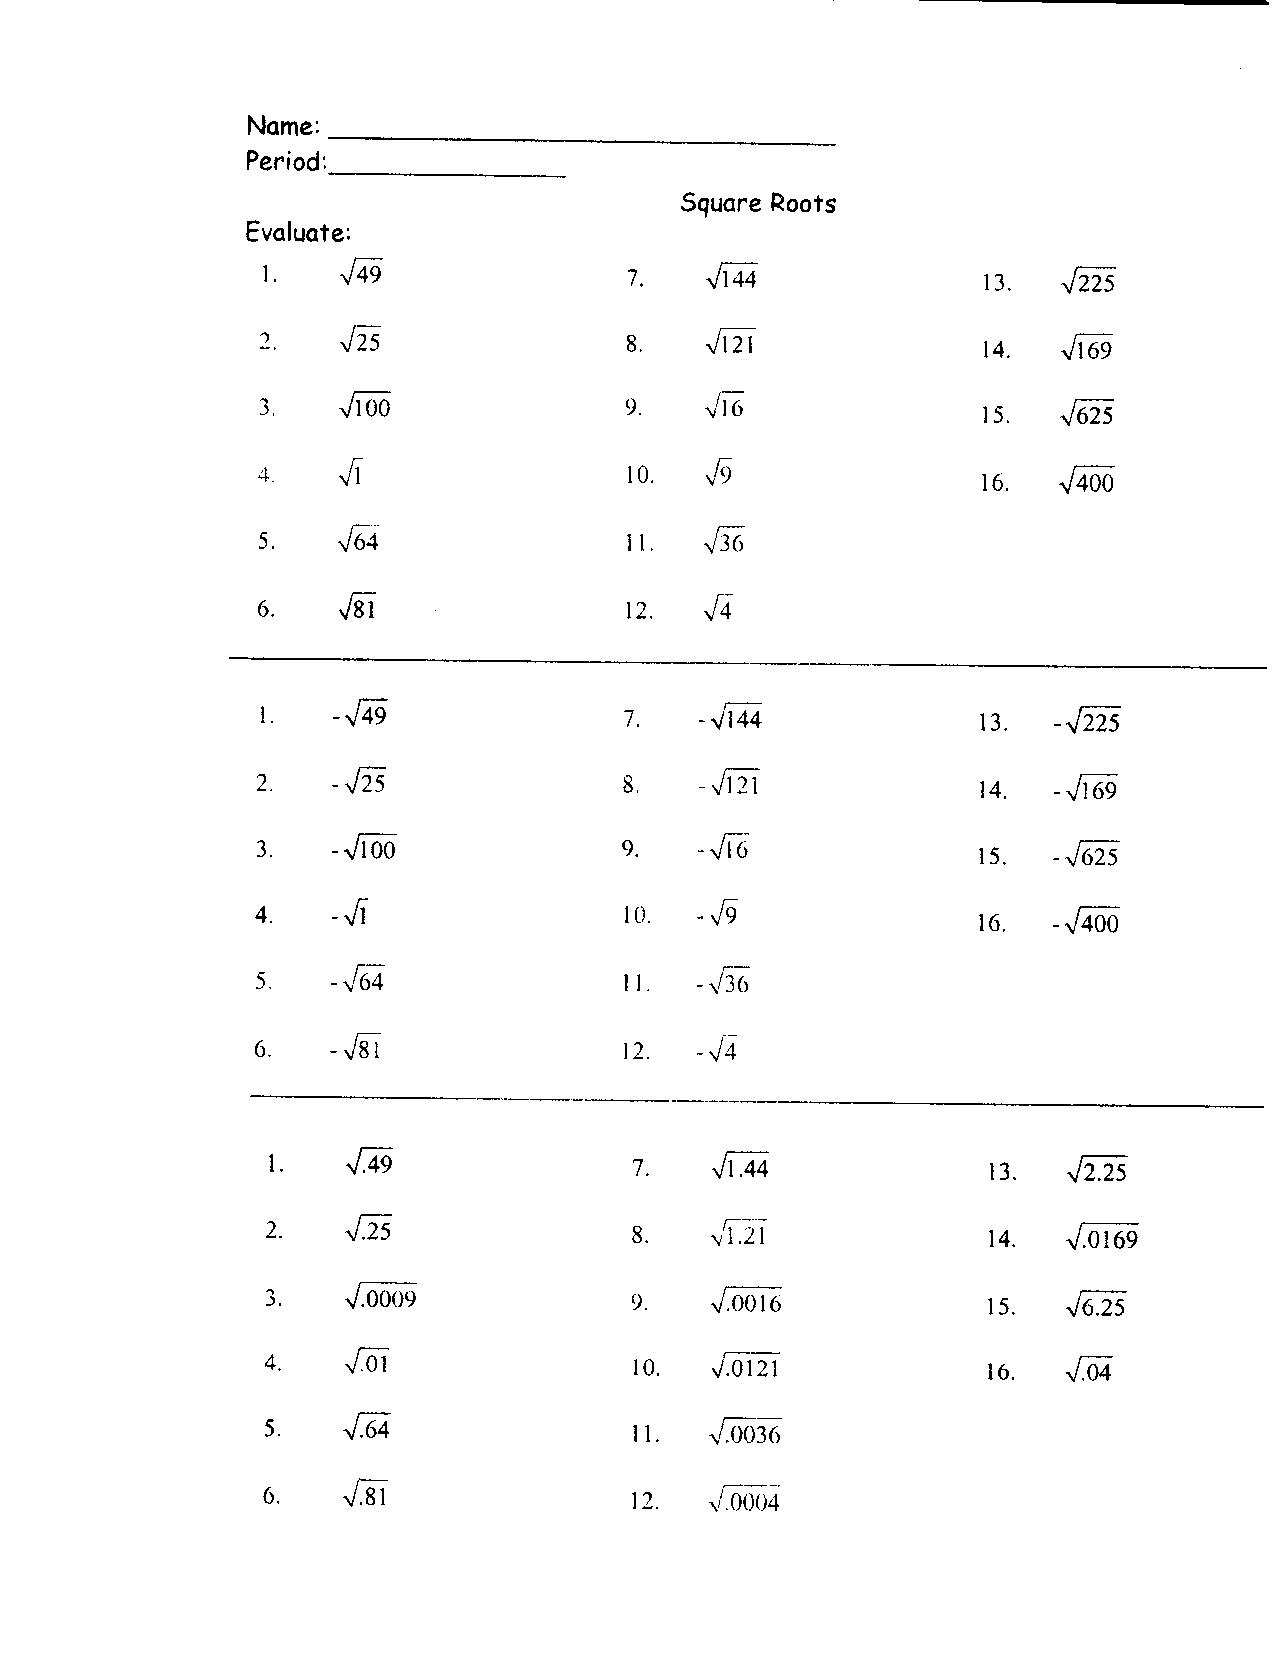 8 Best Images of Square Root Worksheet Printable - Square Root ...